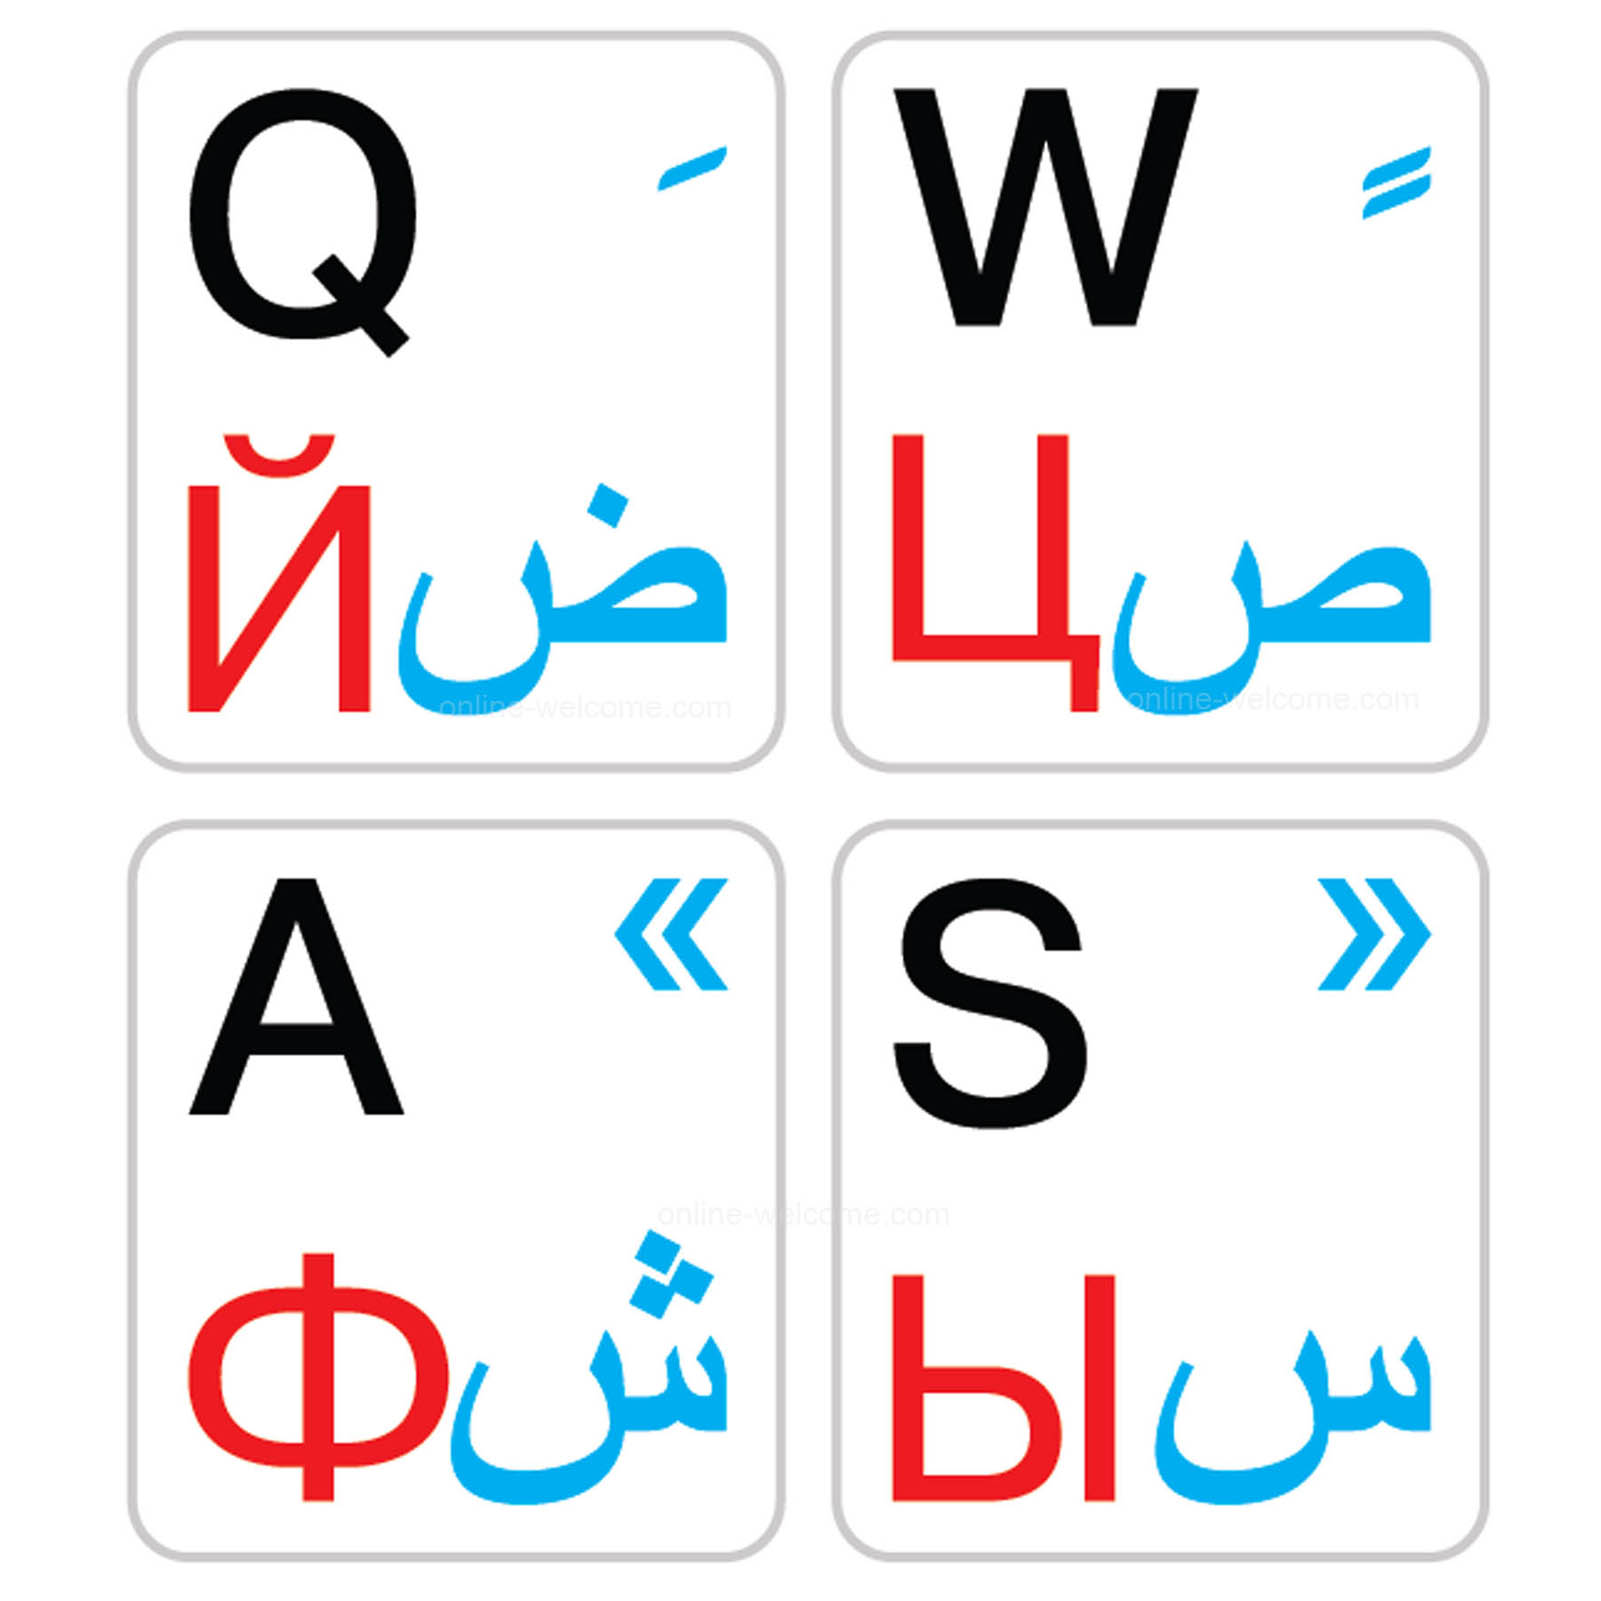 Arabic-Russian-English keyboard stickers white